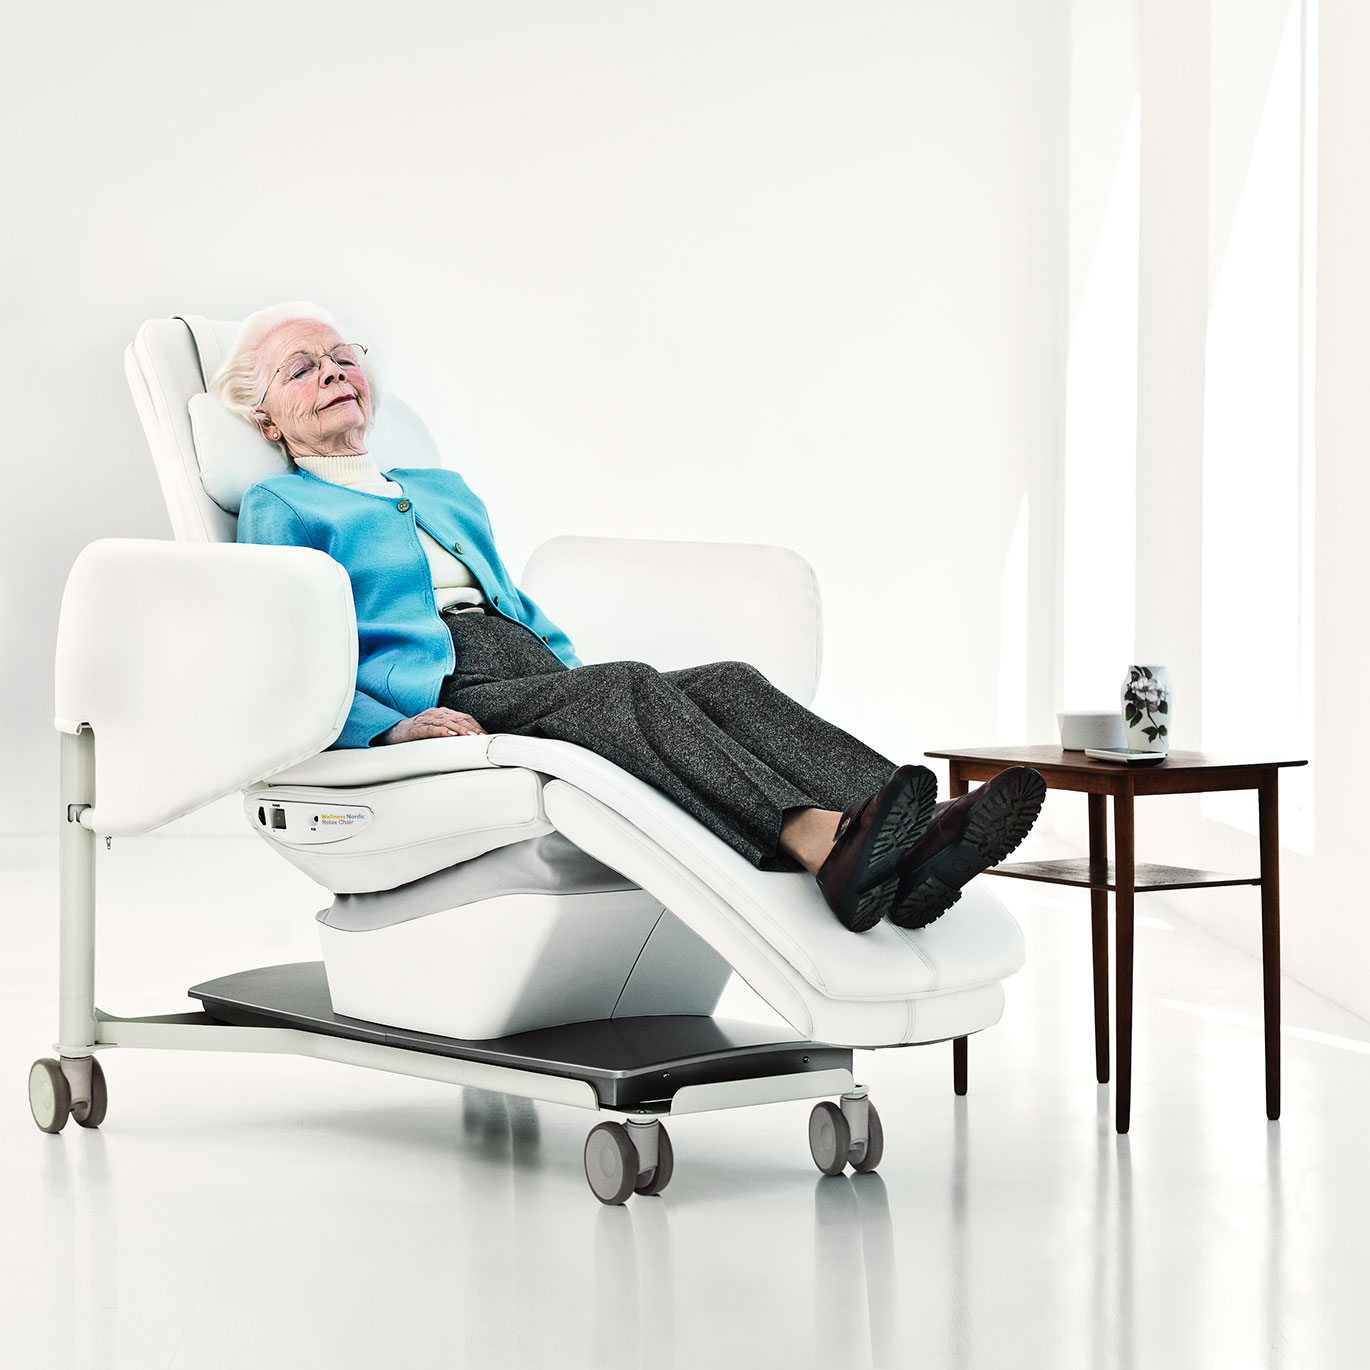 arjo-wellness-nordic-relax-chair-home-banner-dementia-